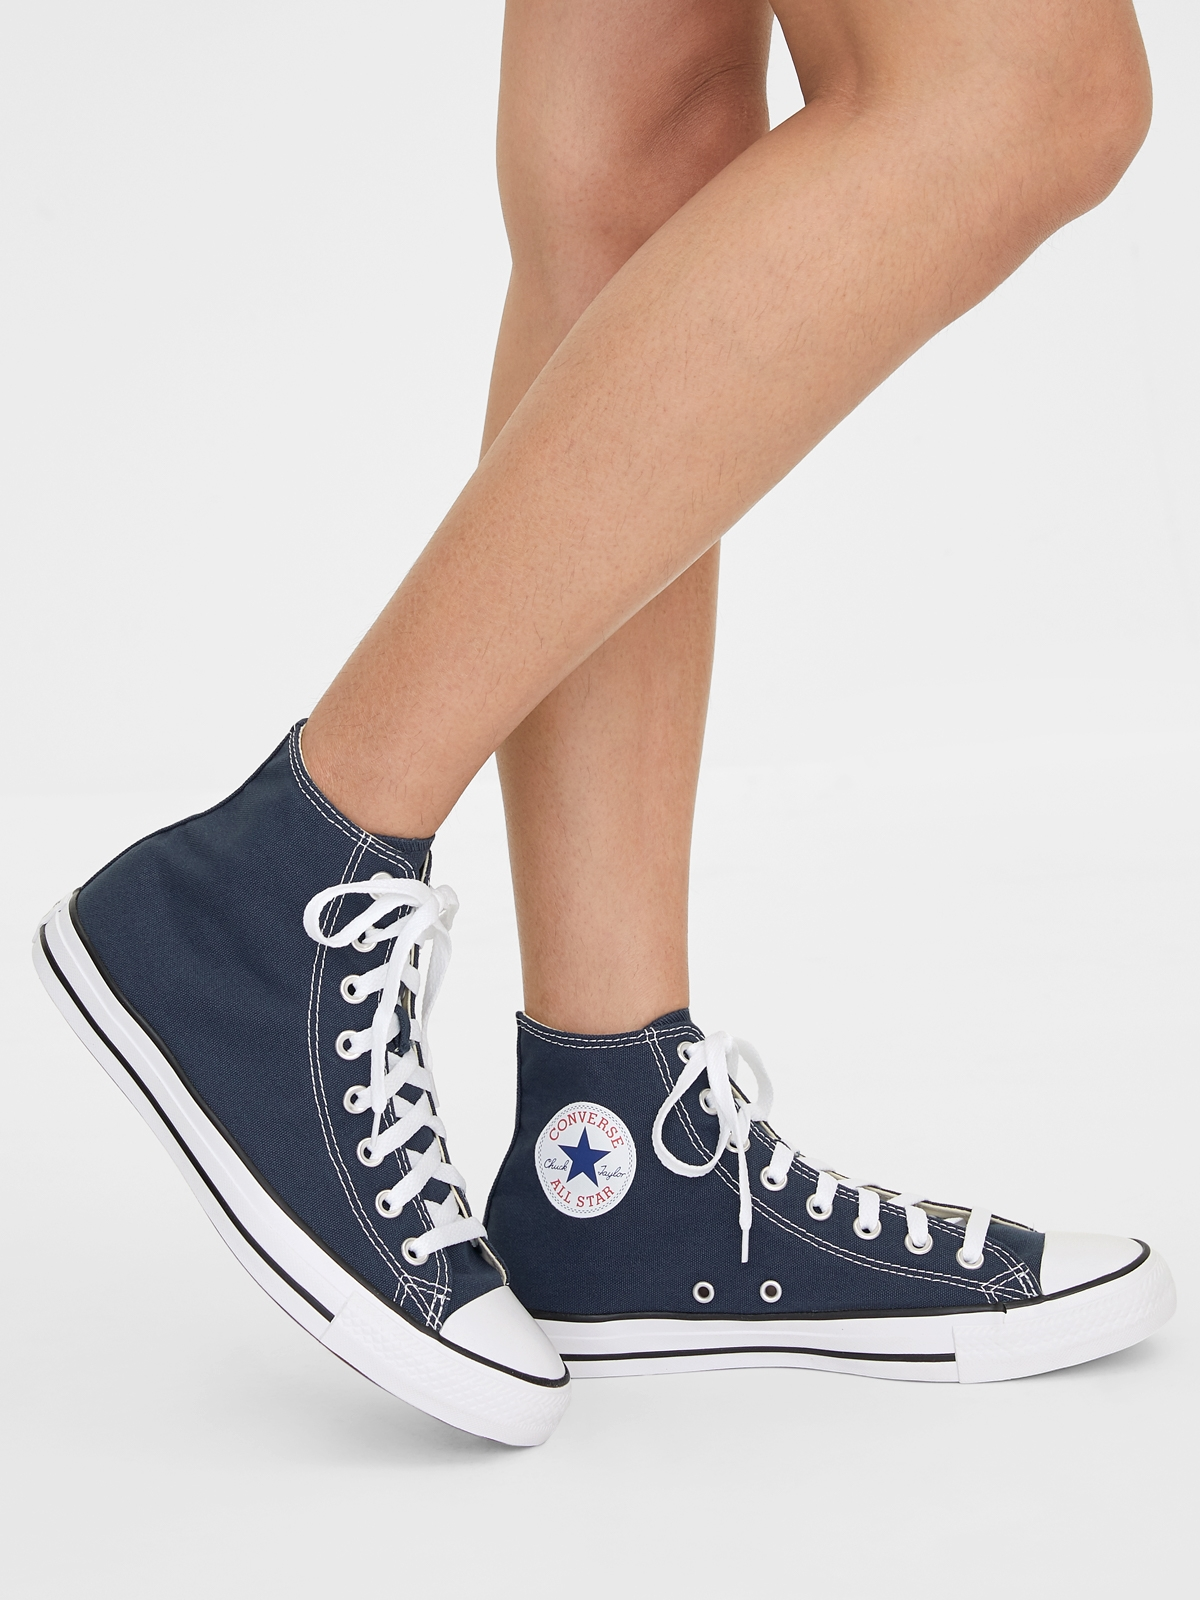 Converse All Star Hi Canvas Sneakers Navy